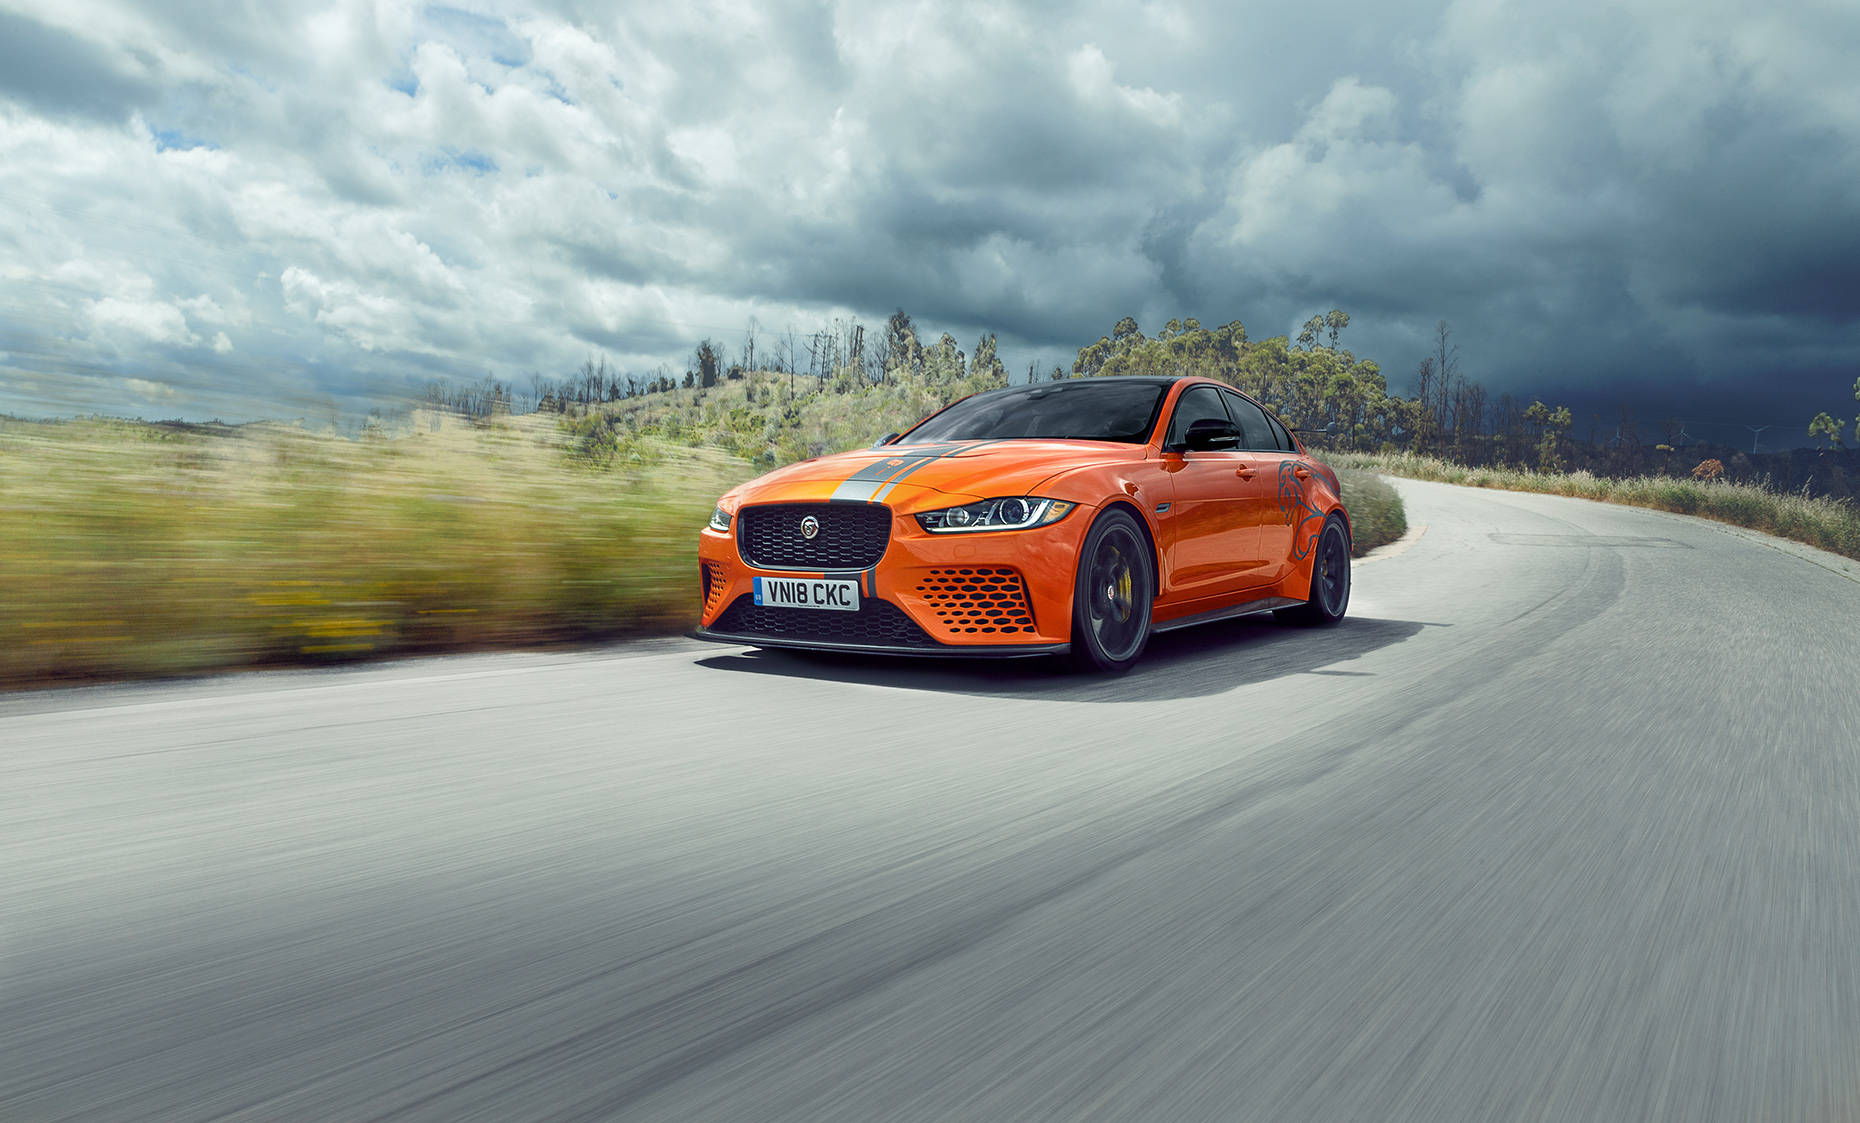 Jaguar-XE-SV-car-too-car-web